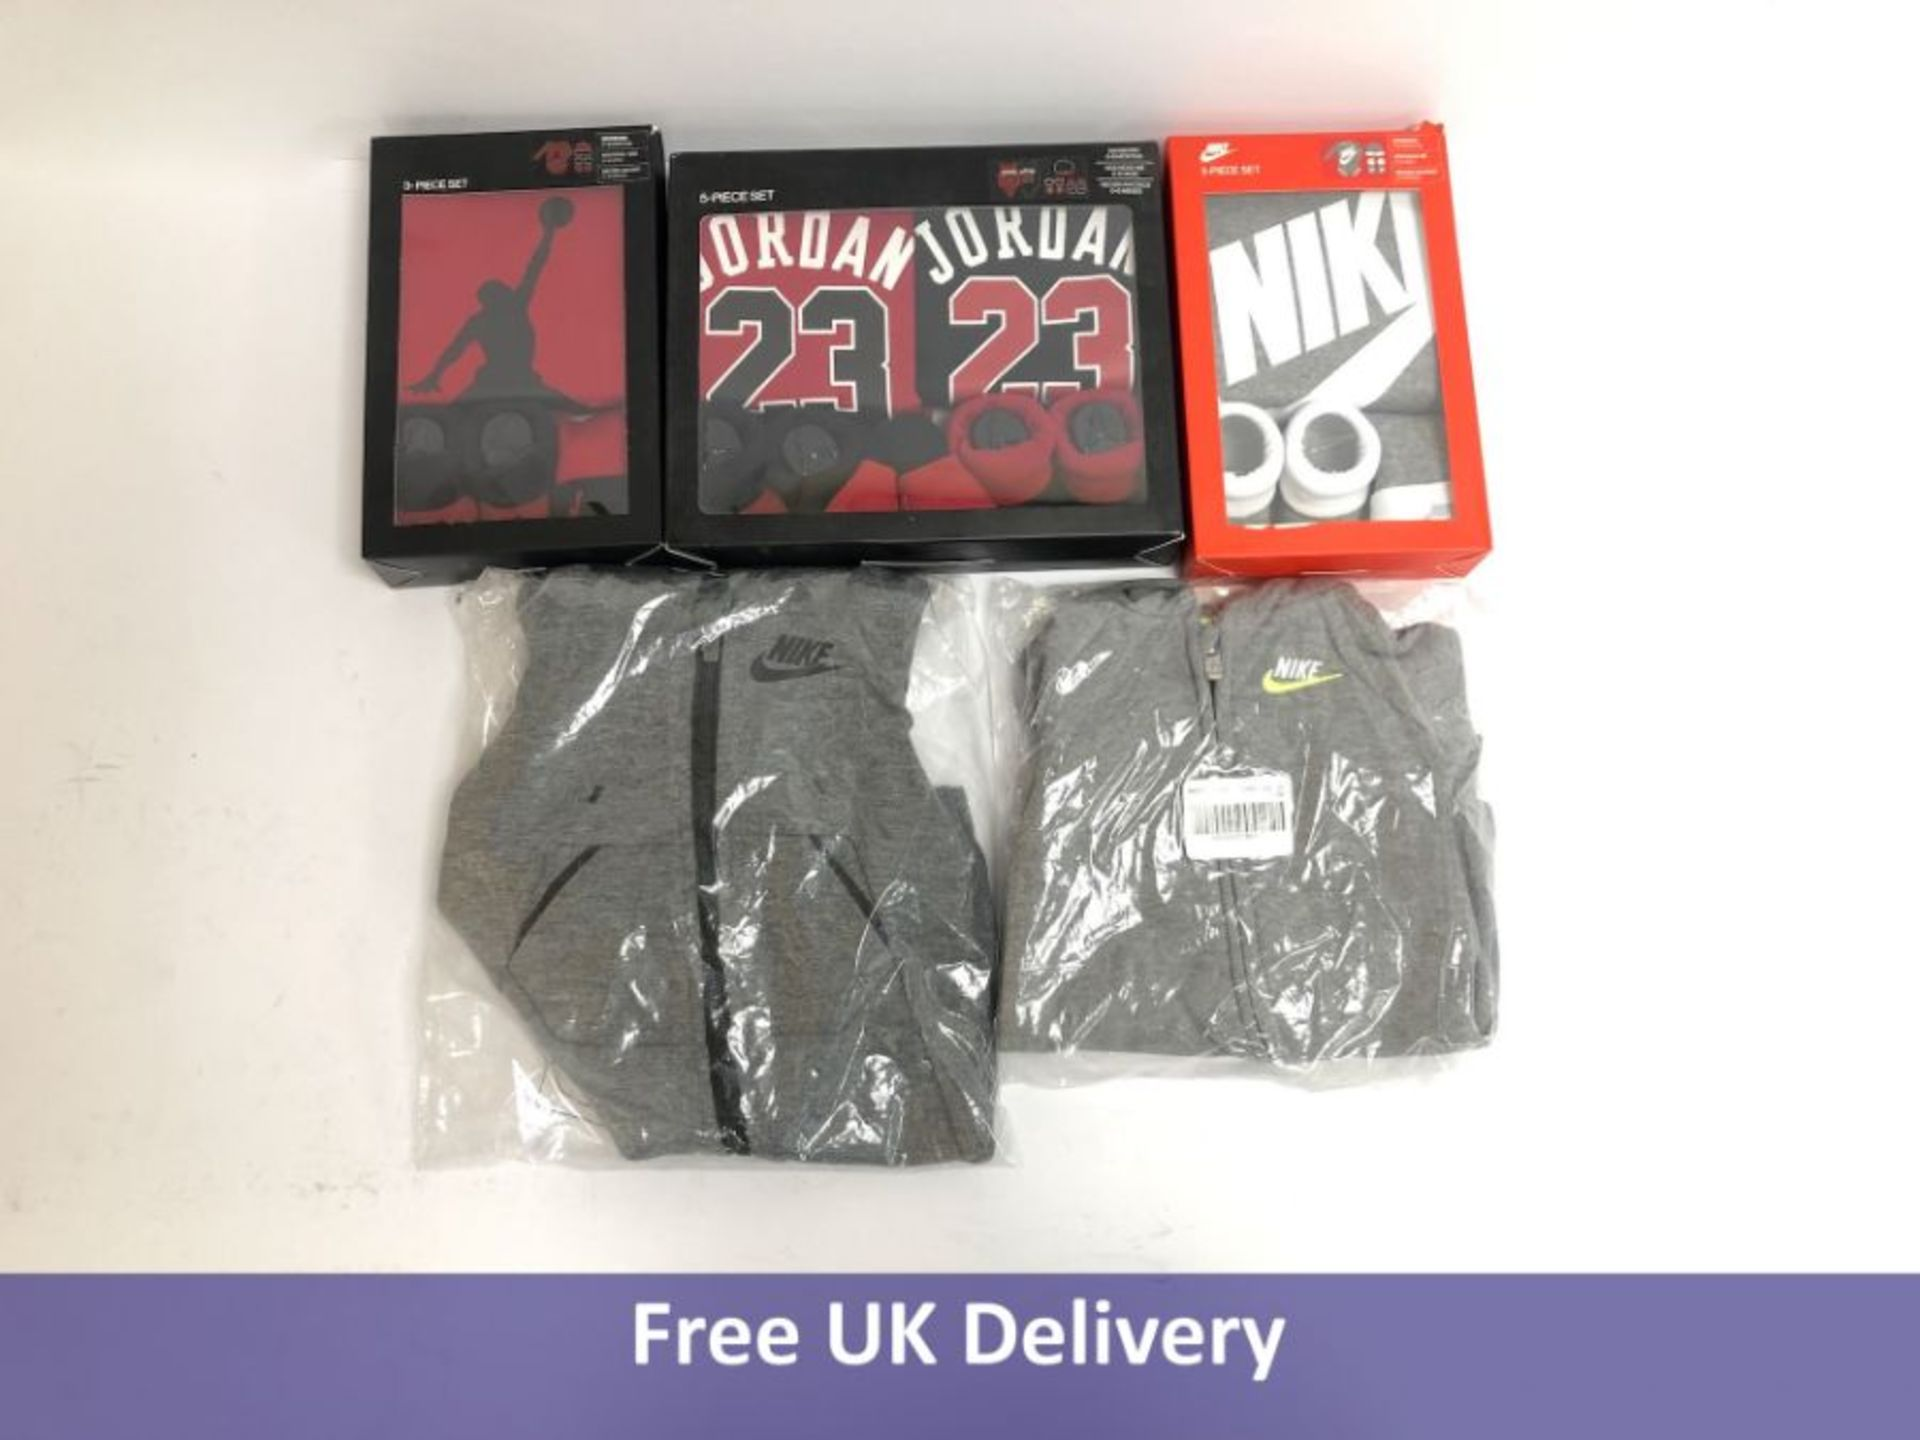 Five items of Nike Baby Clothing